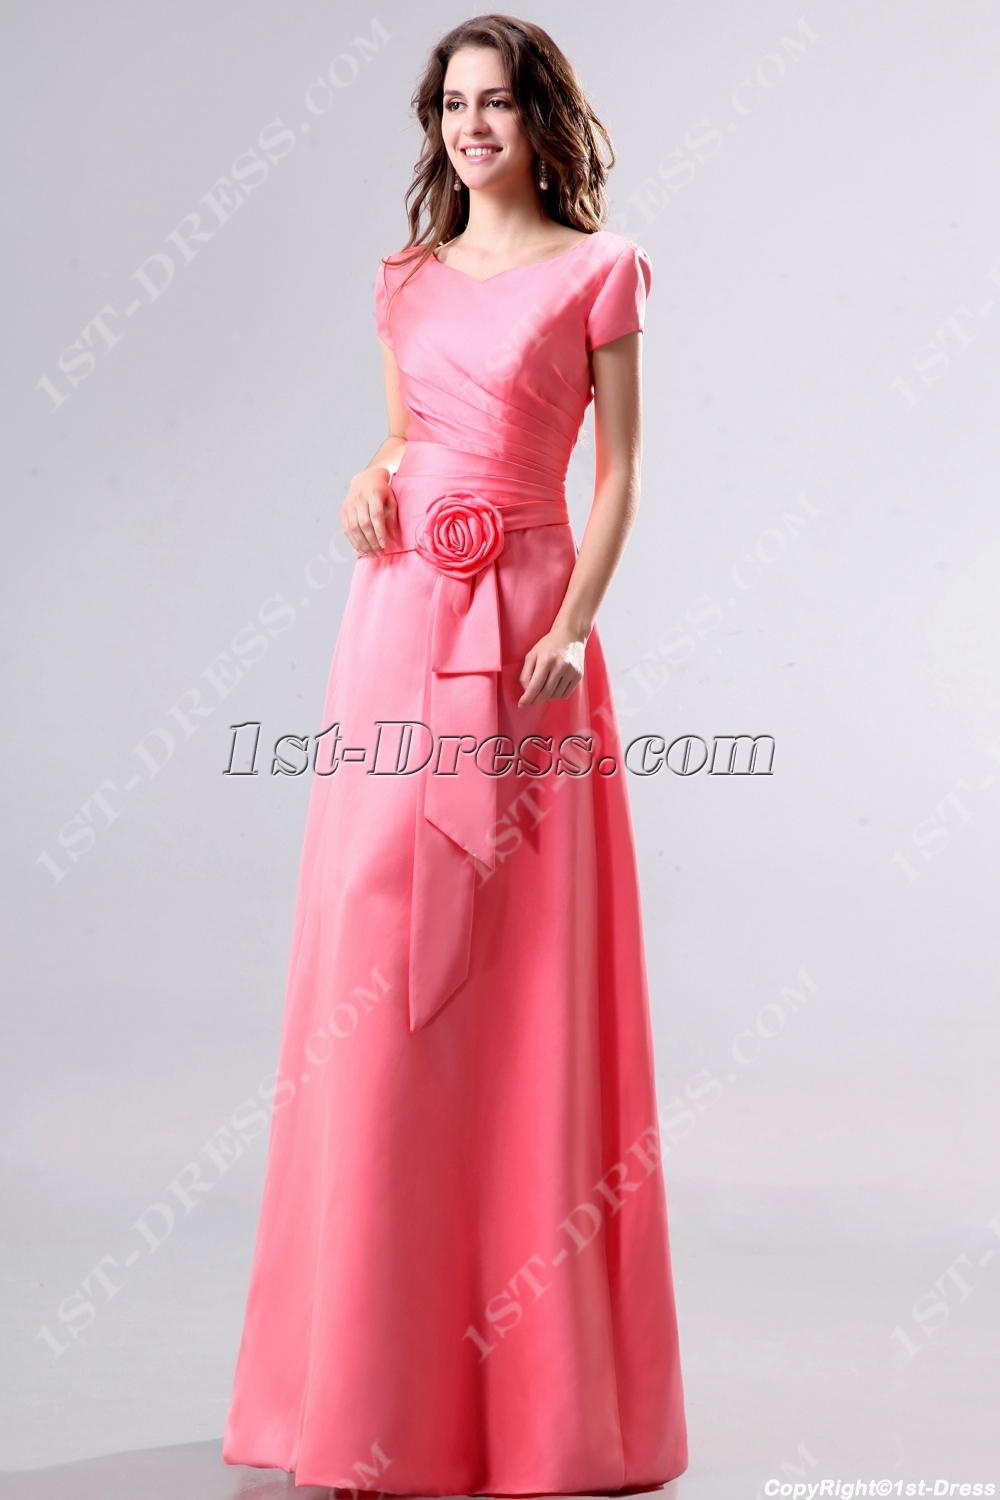 on-line buying of plus length dresses